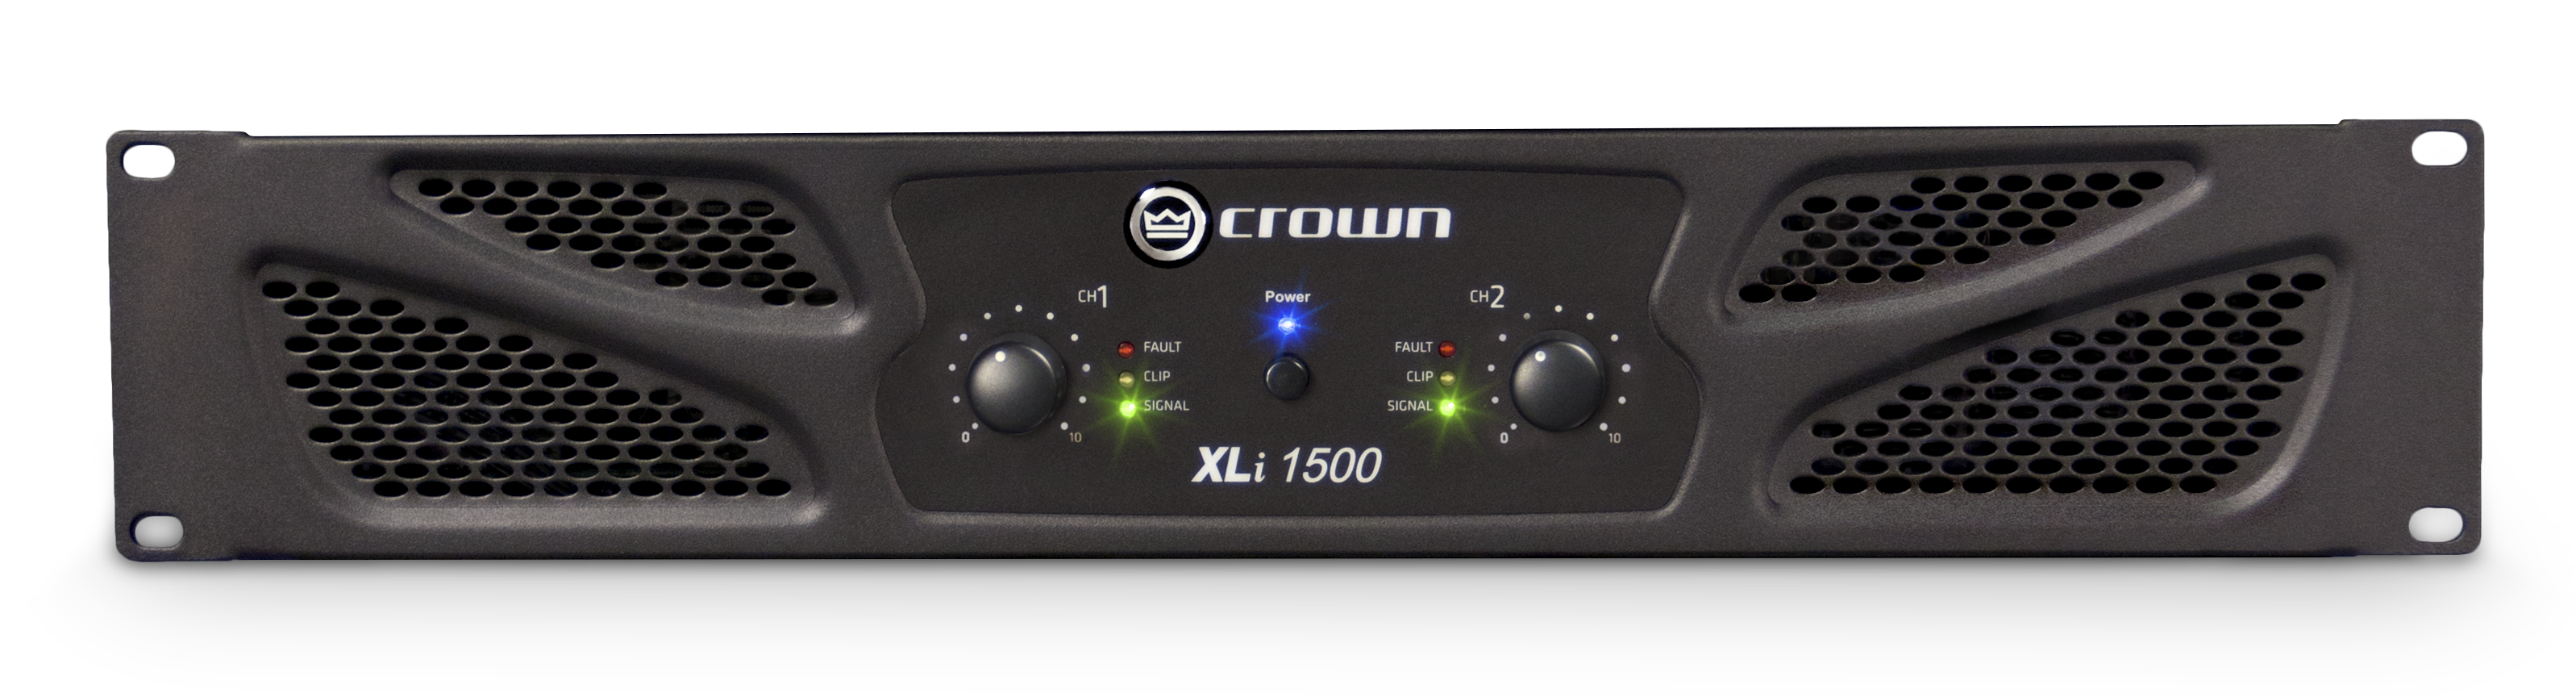 Xli 1500 Crown Audio Professional Power Amplifiers 22 Watt Amplifier Two Channel 450w 4